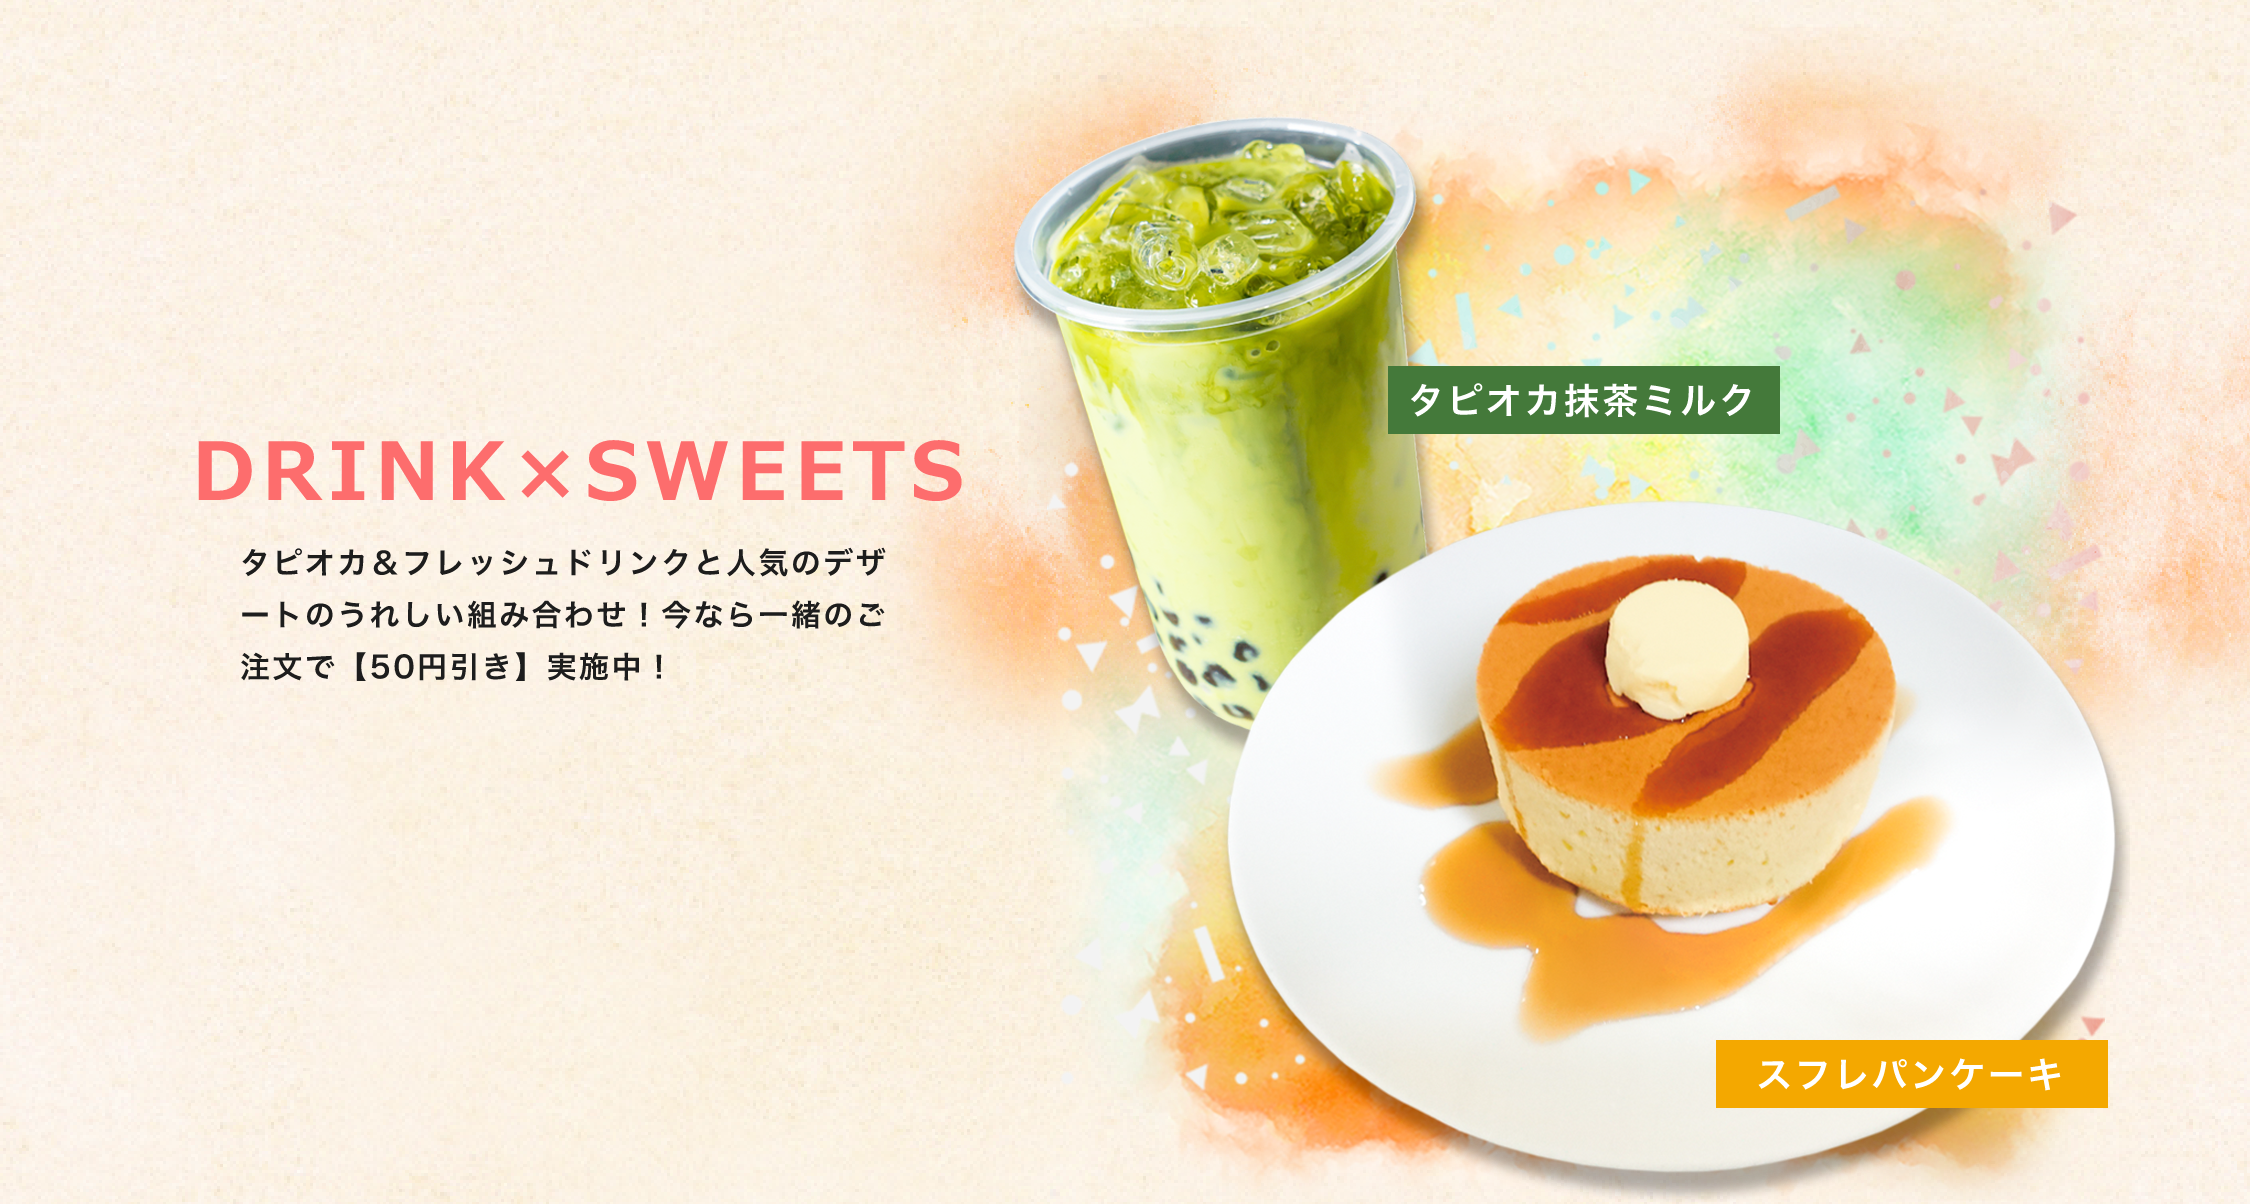 DRINK*SWEETS